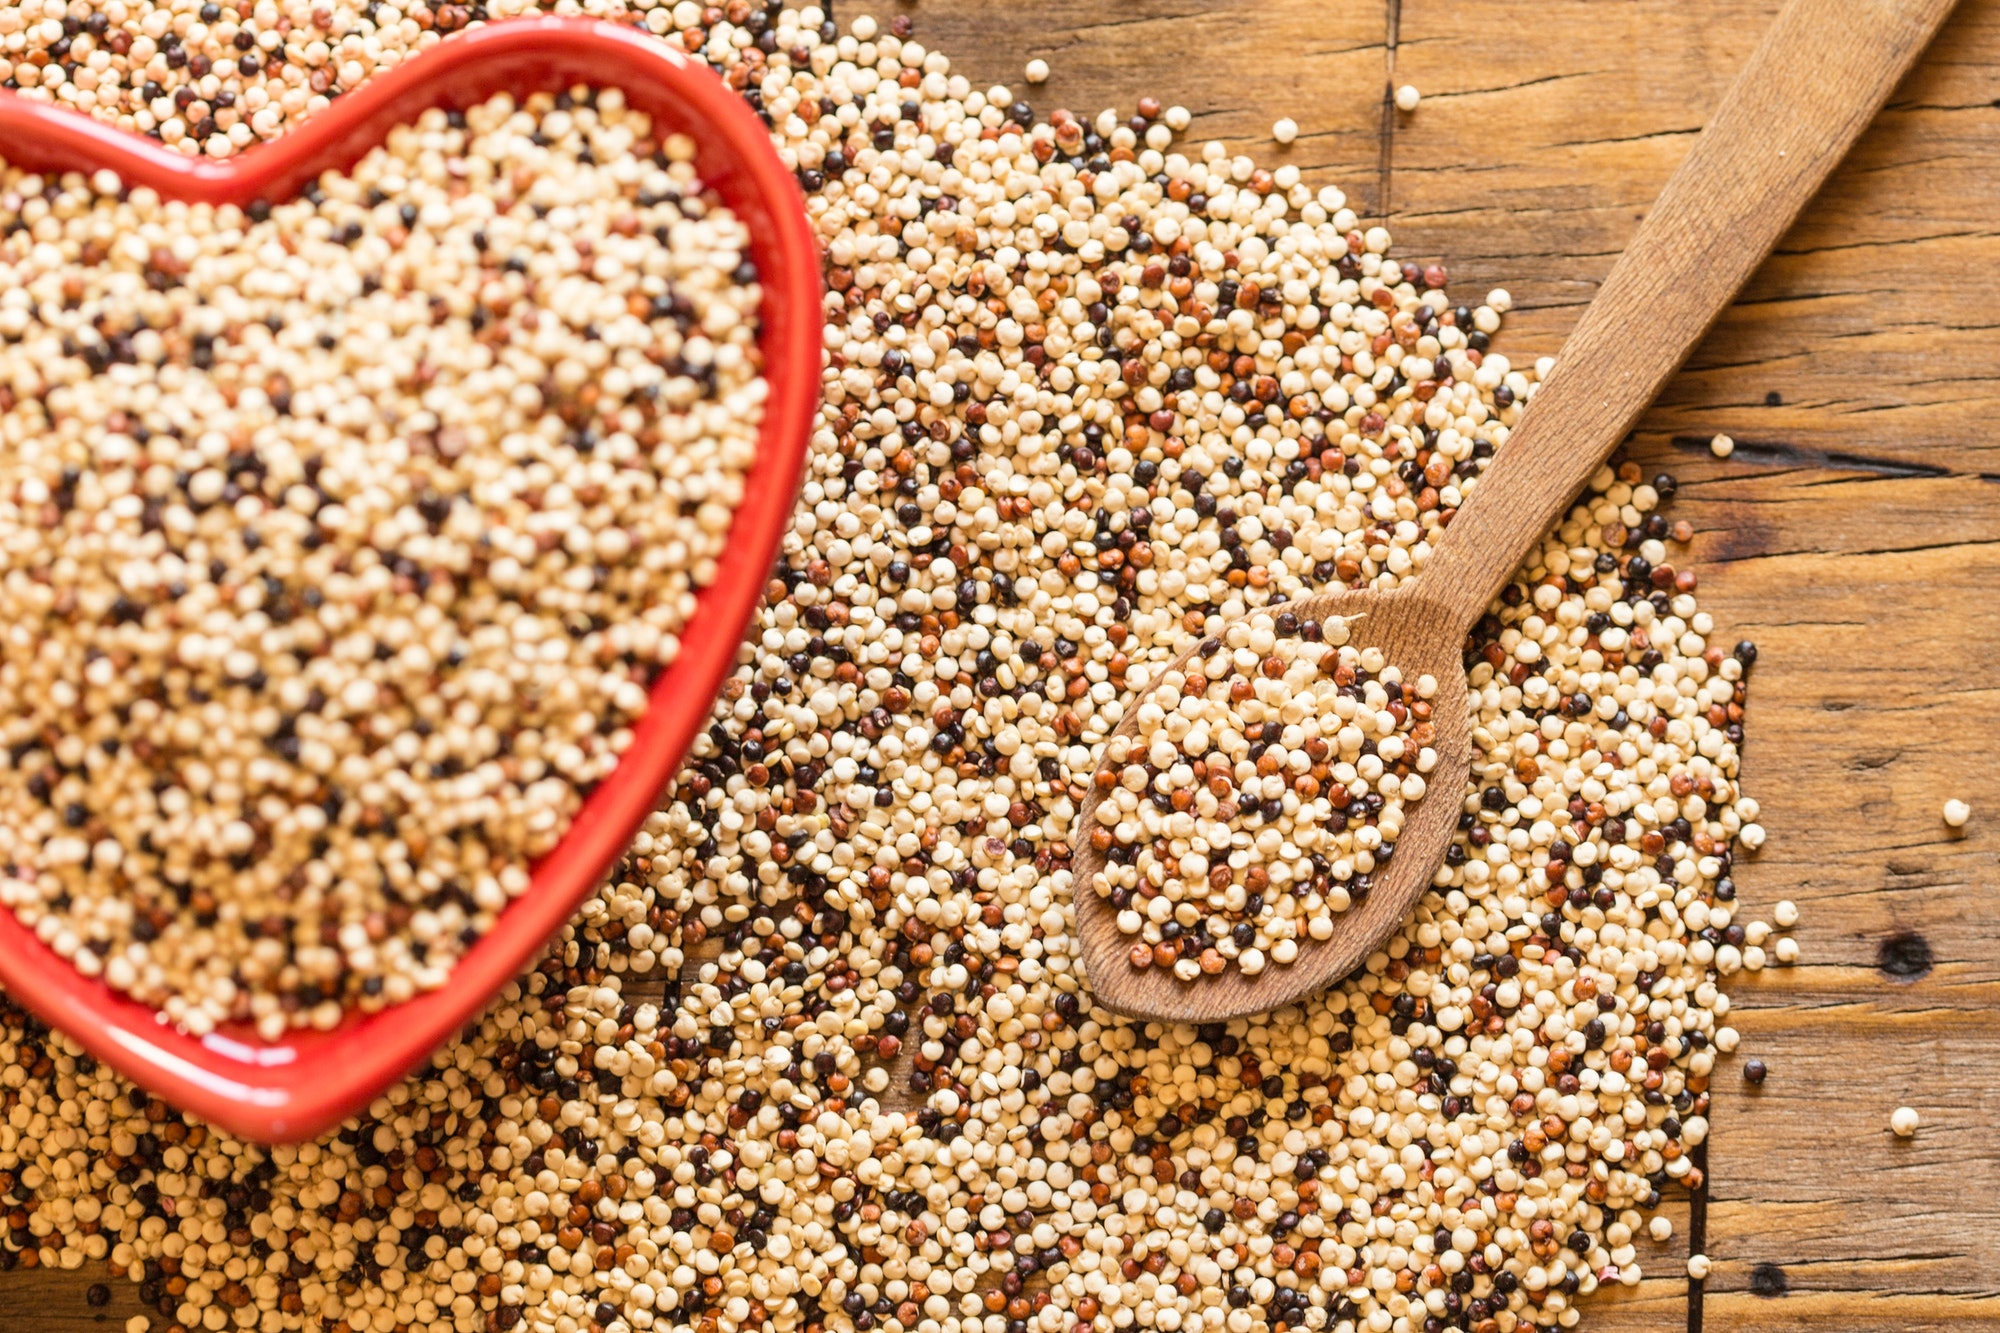 Can Whole Grains Help with Blood Pressure?